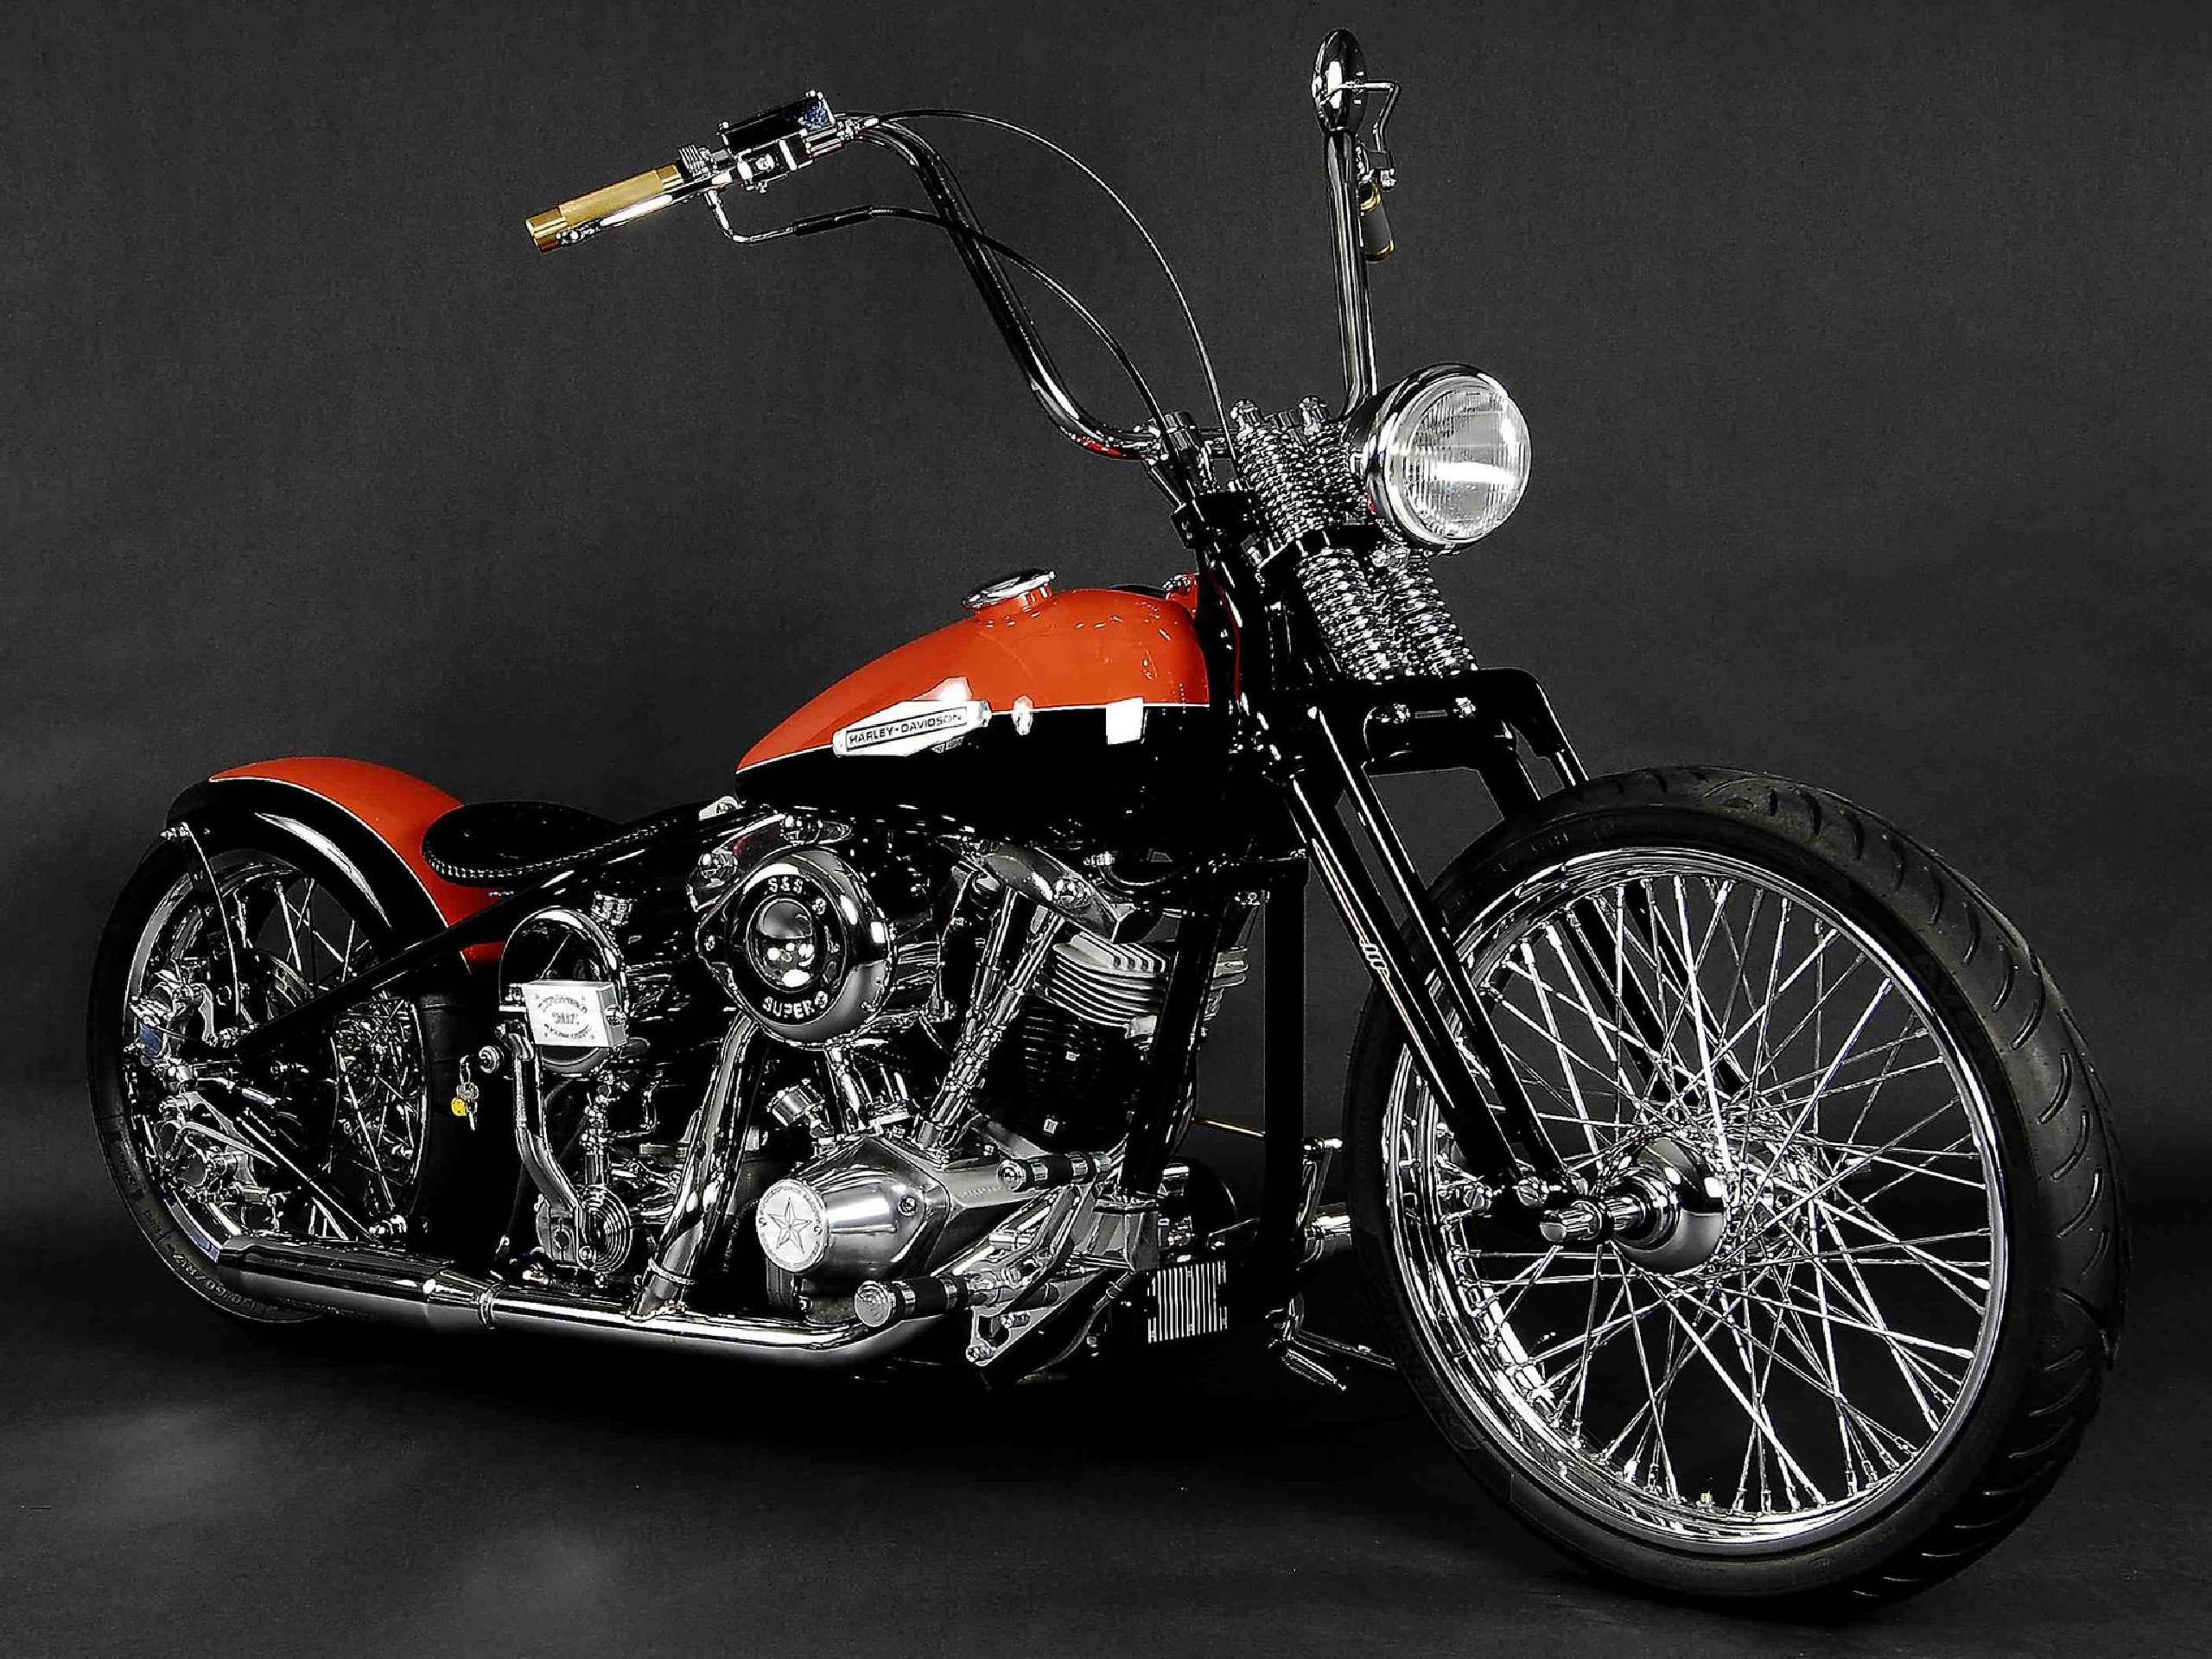 Harley-Davidson Full HD Wallpaper and Background Image | 2560x1920